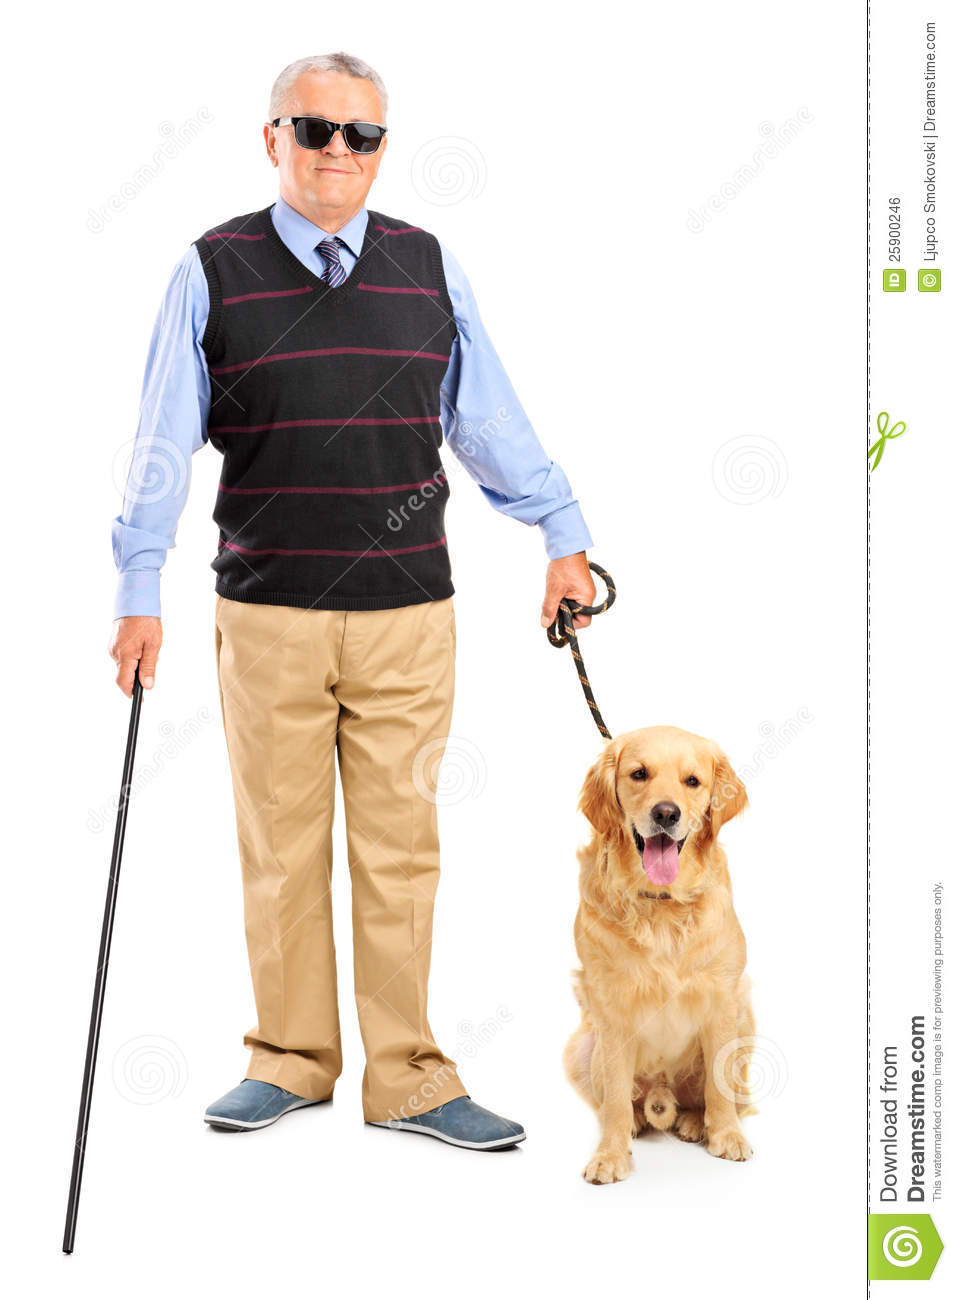 ... blind person holding a walking stick and a dog on white background